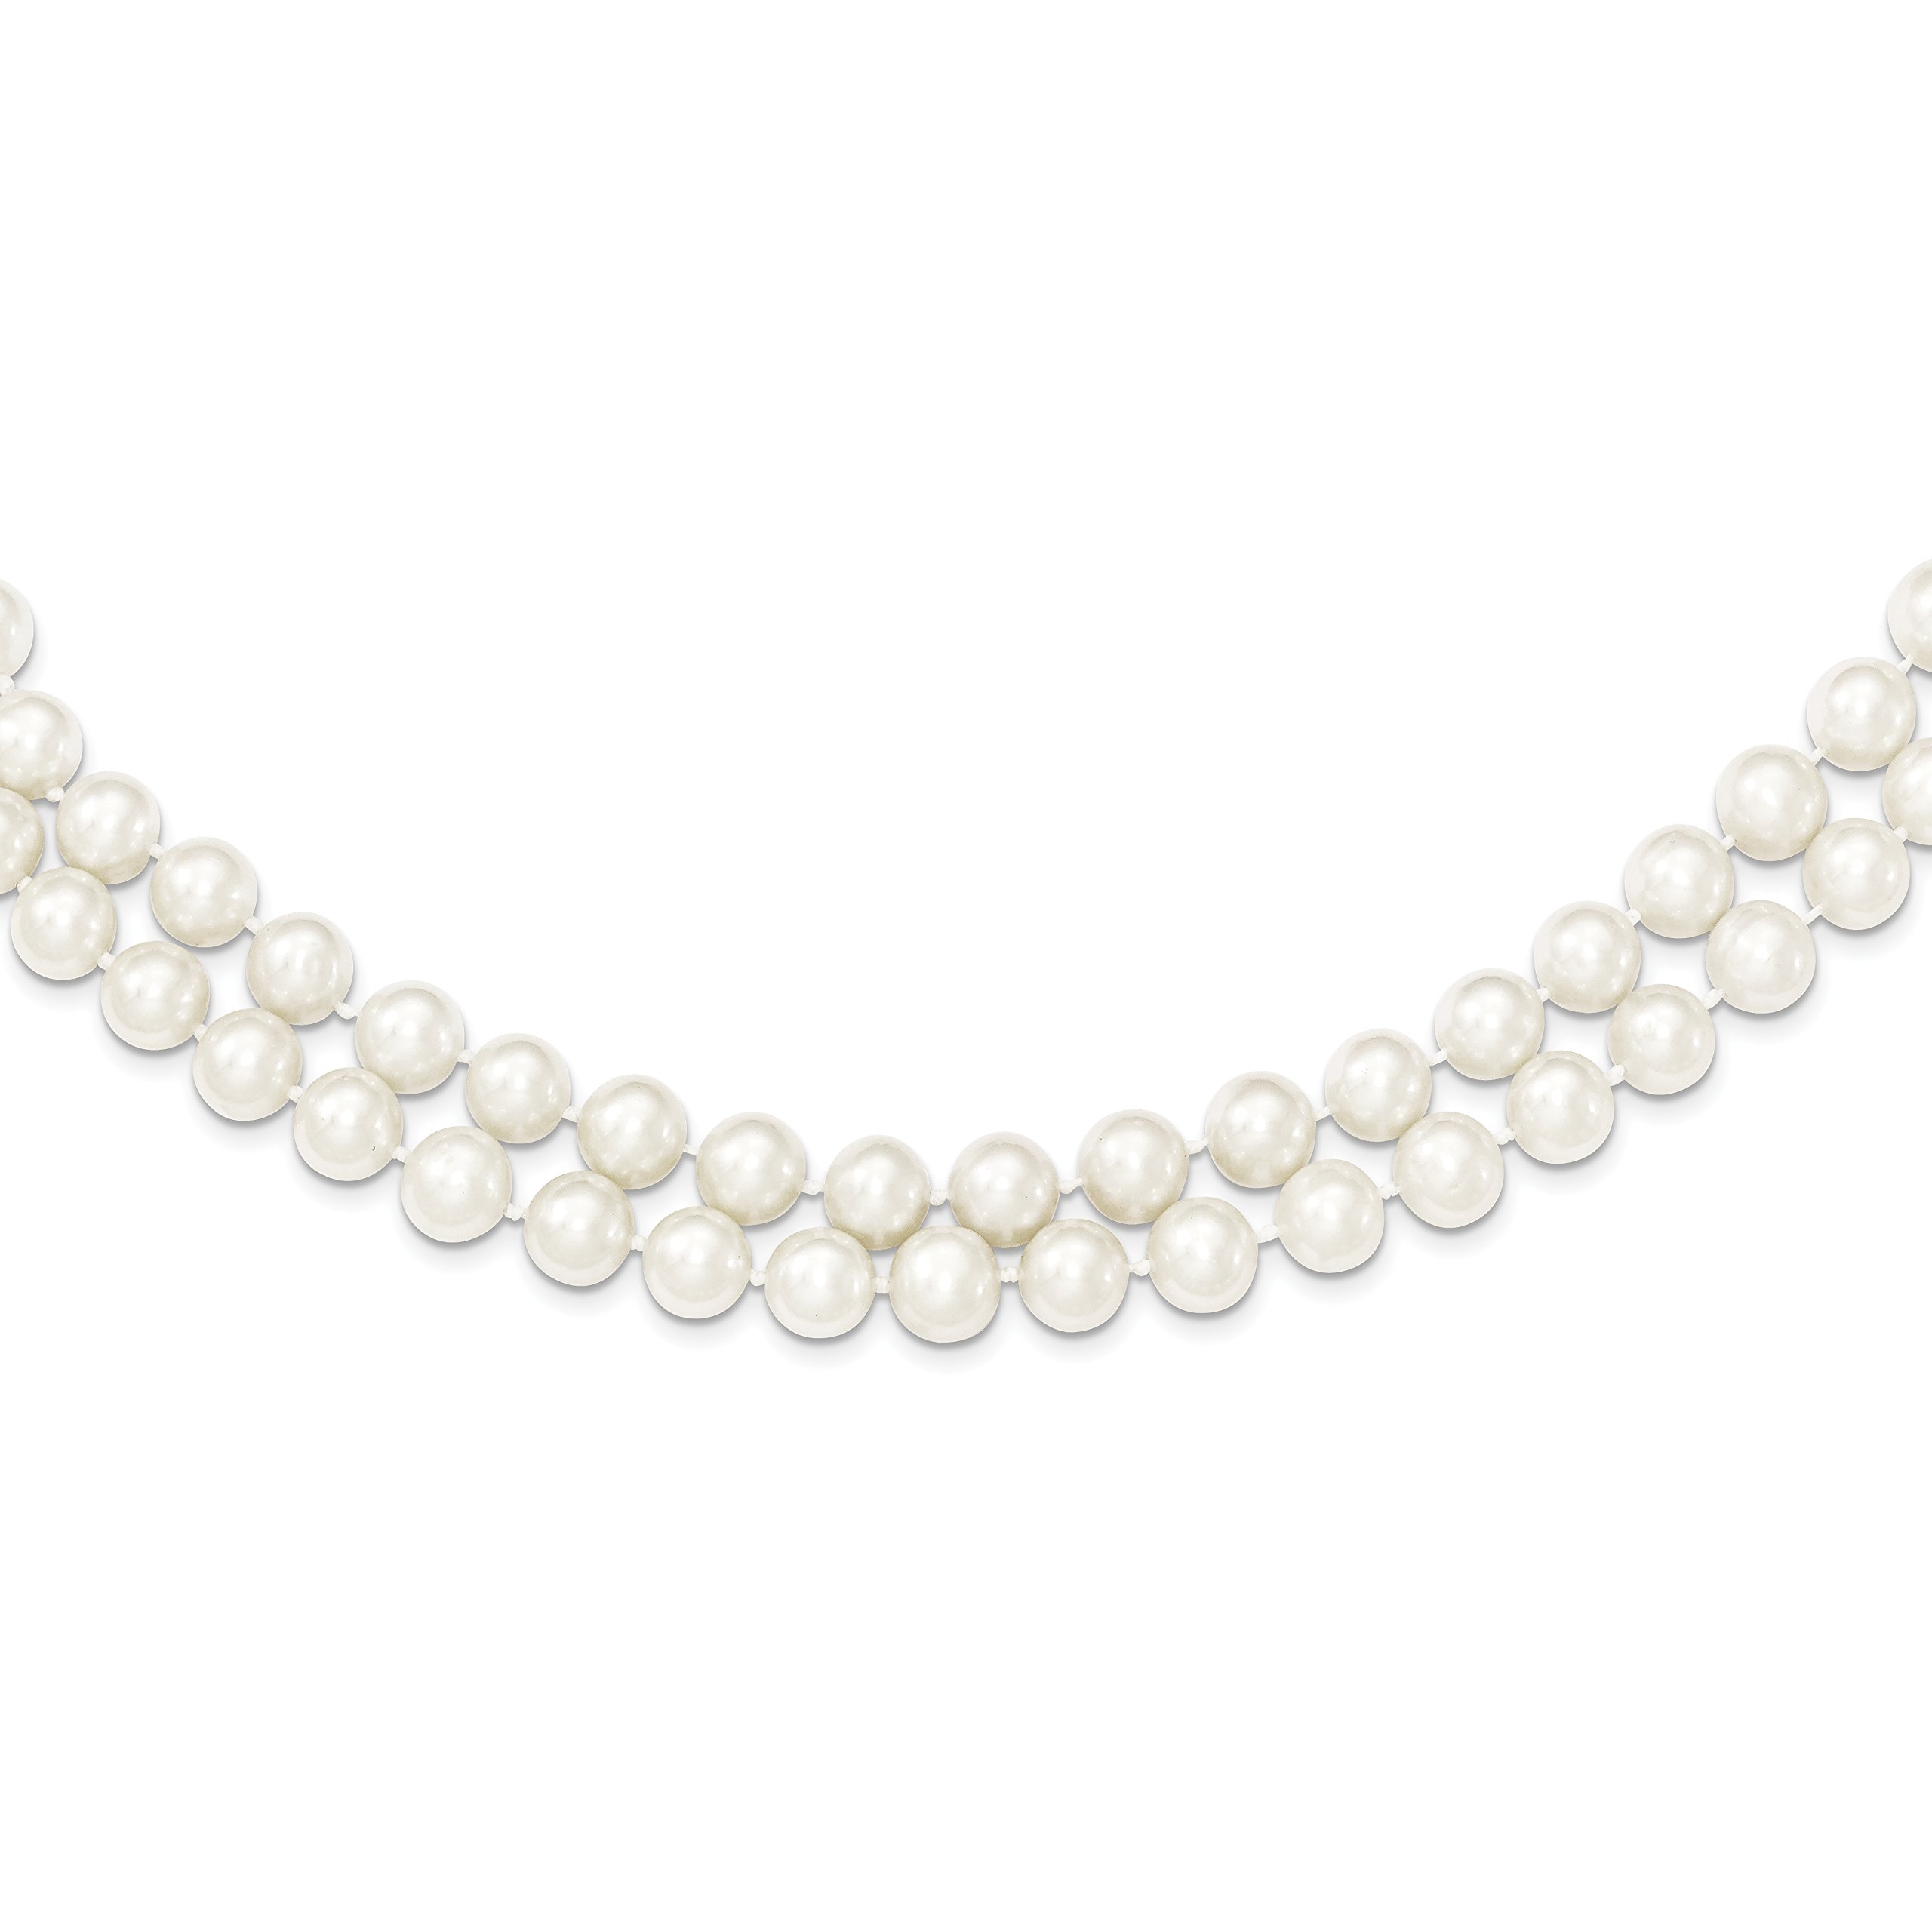 ICE CARATS 925 Sterling Silver 7.5 8.5mm White Freshwater Cultured Pearl 2 Strand Chain Necklace Fine Jewelry Gift Set For Women Heart